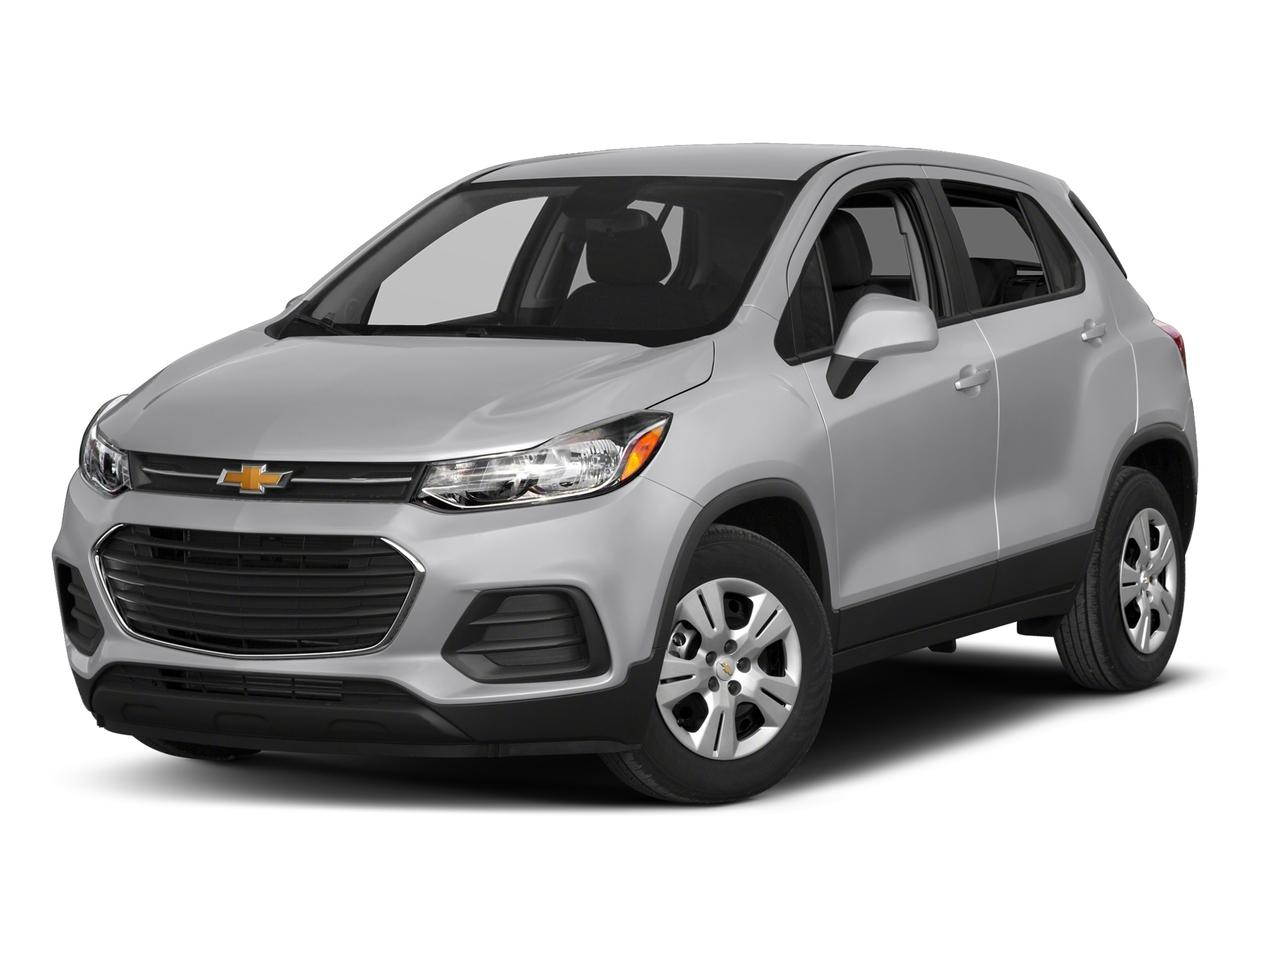 2017 Chevrolet Trax Vehicle Photo in Oklahoma City, OK 73162